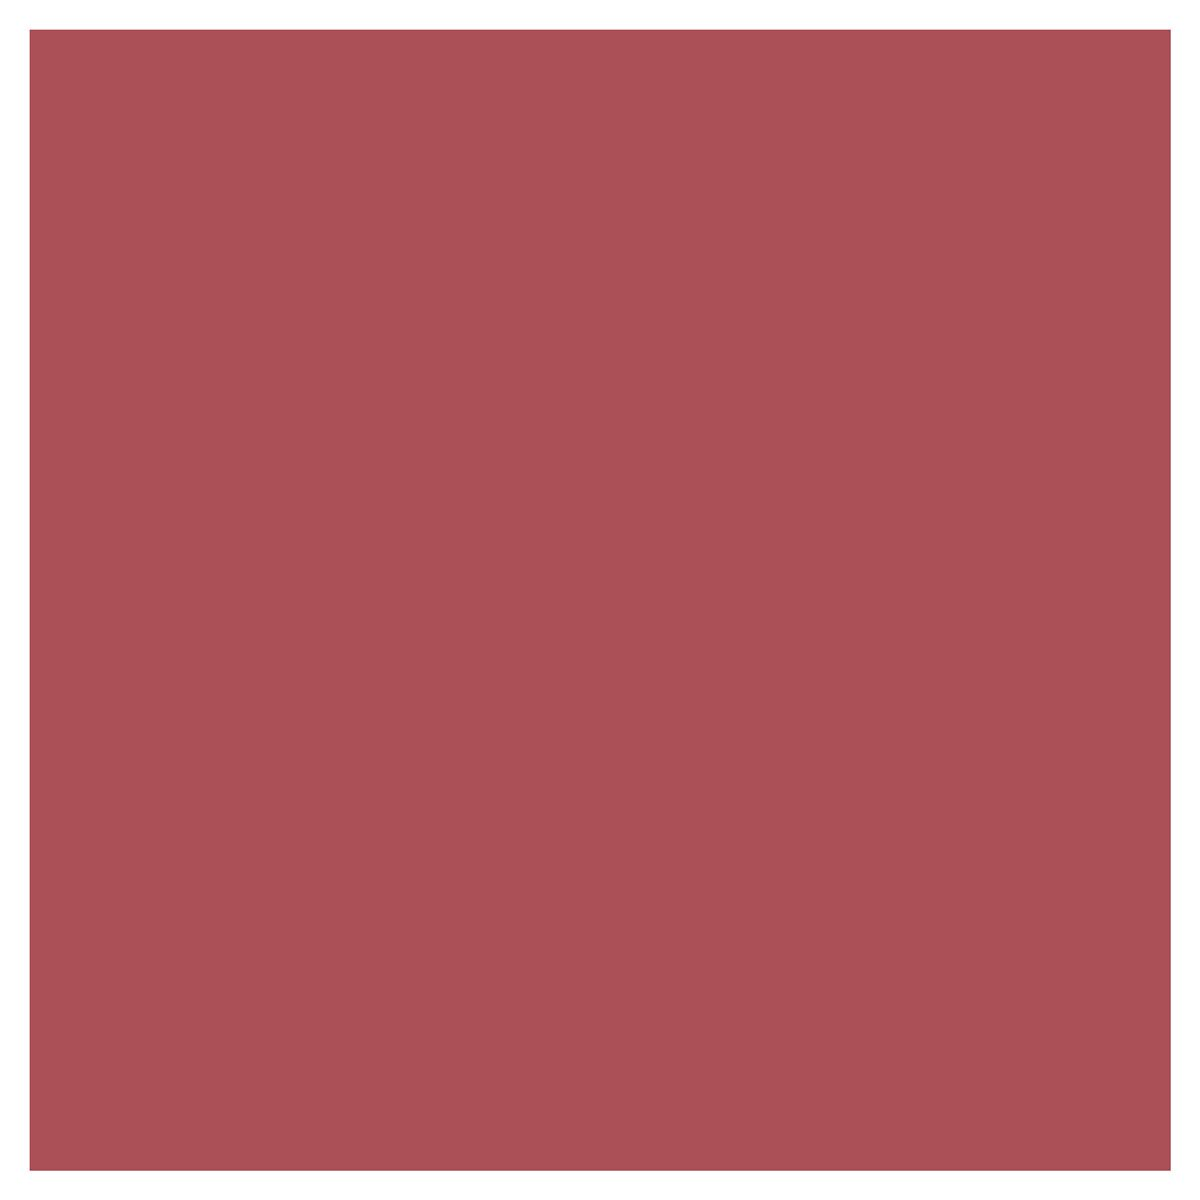 Ramsbury Red' by Susie Watson Designs is a wonderful colour for a ...